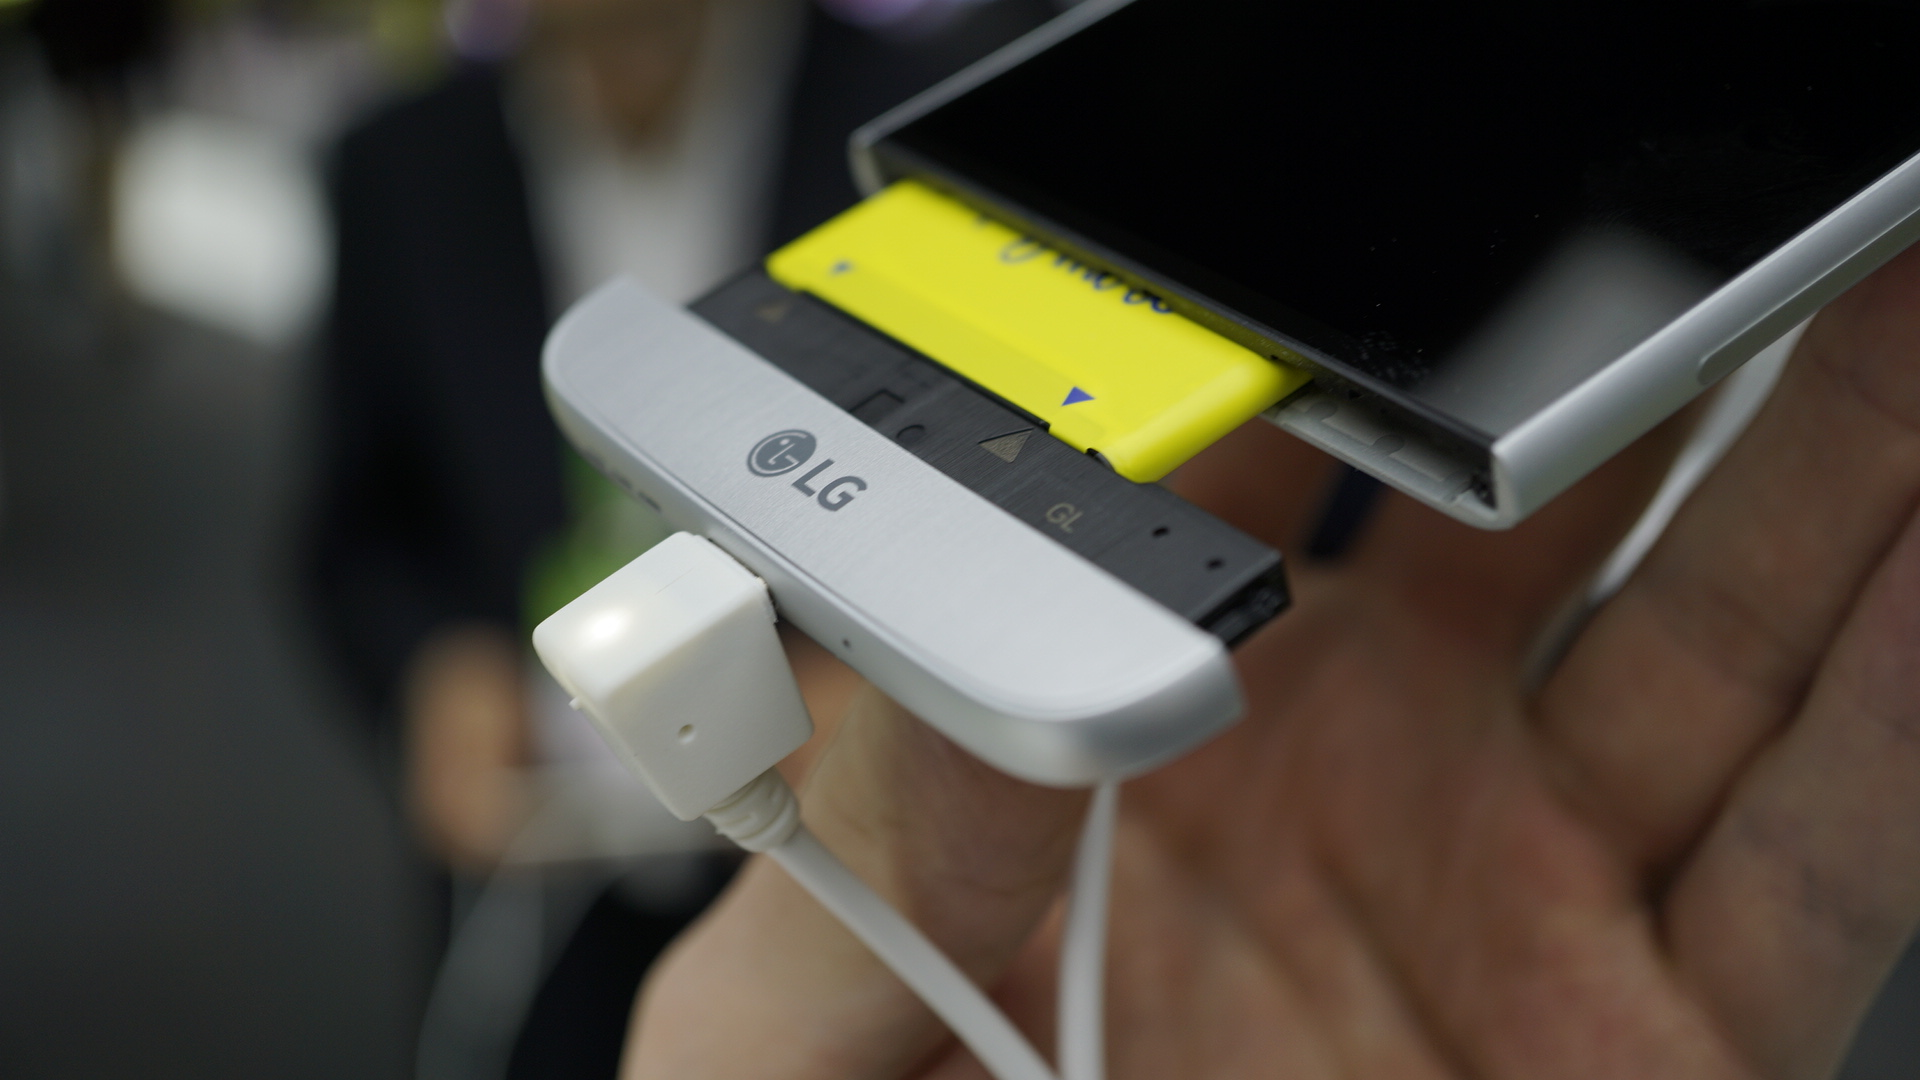 lg-g5-mwc-hands-on-set-2-26